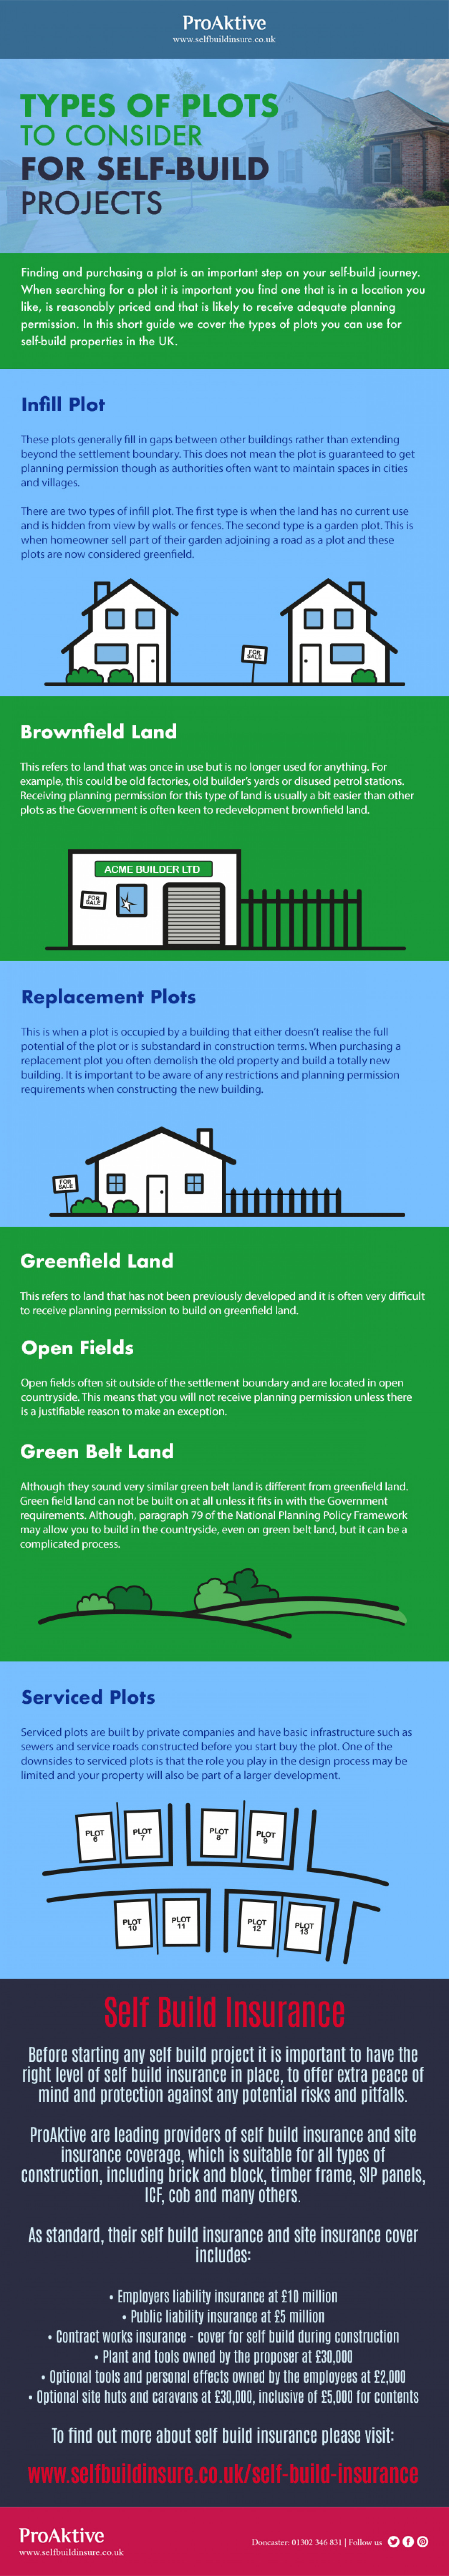 Types of Plots to Consider for Self Build Projects Infographic